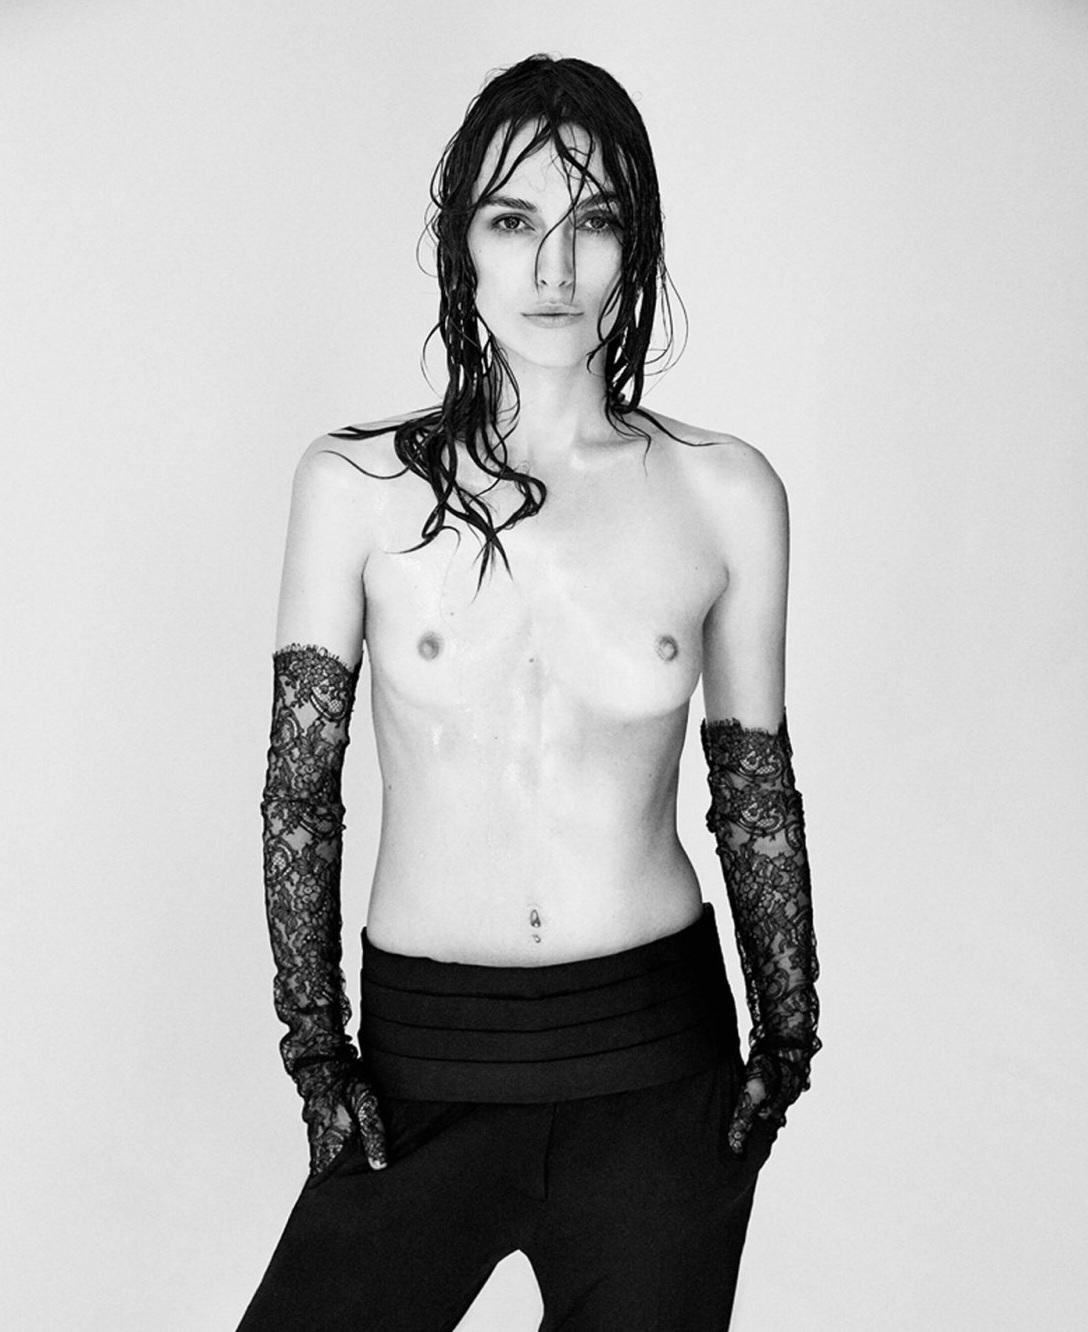 keira knightley 31 Keira Knightley Strips Naked In Protest Against Photoshopping